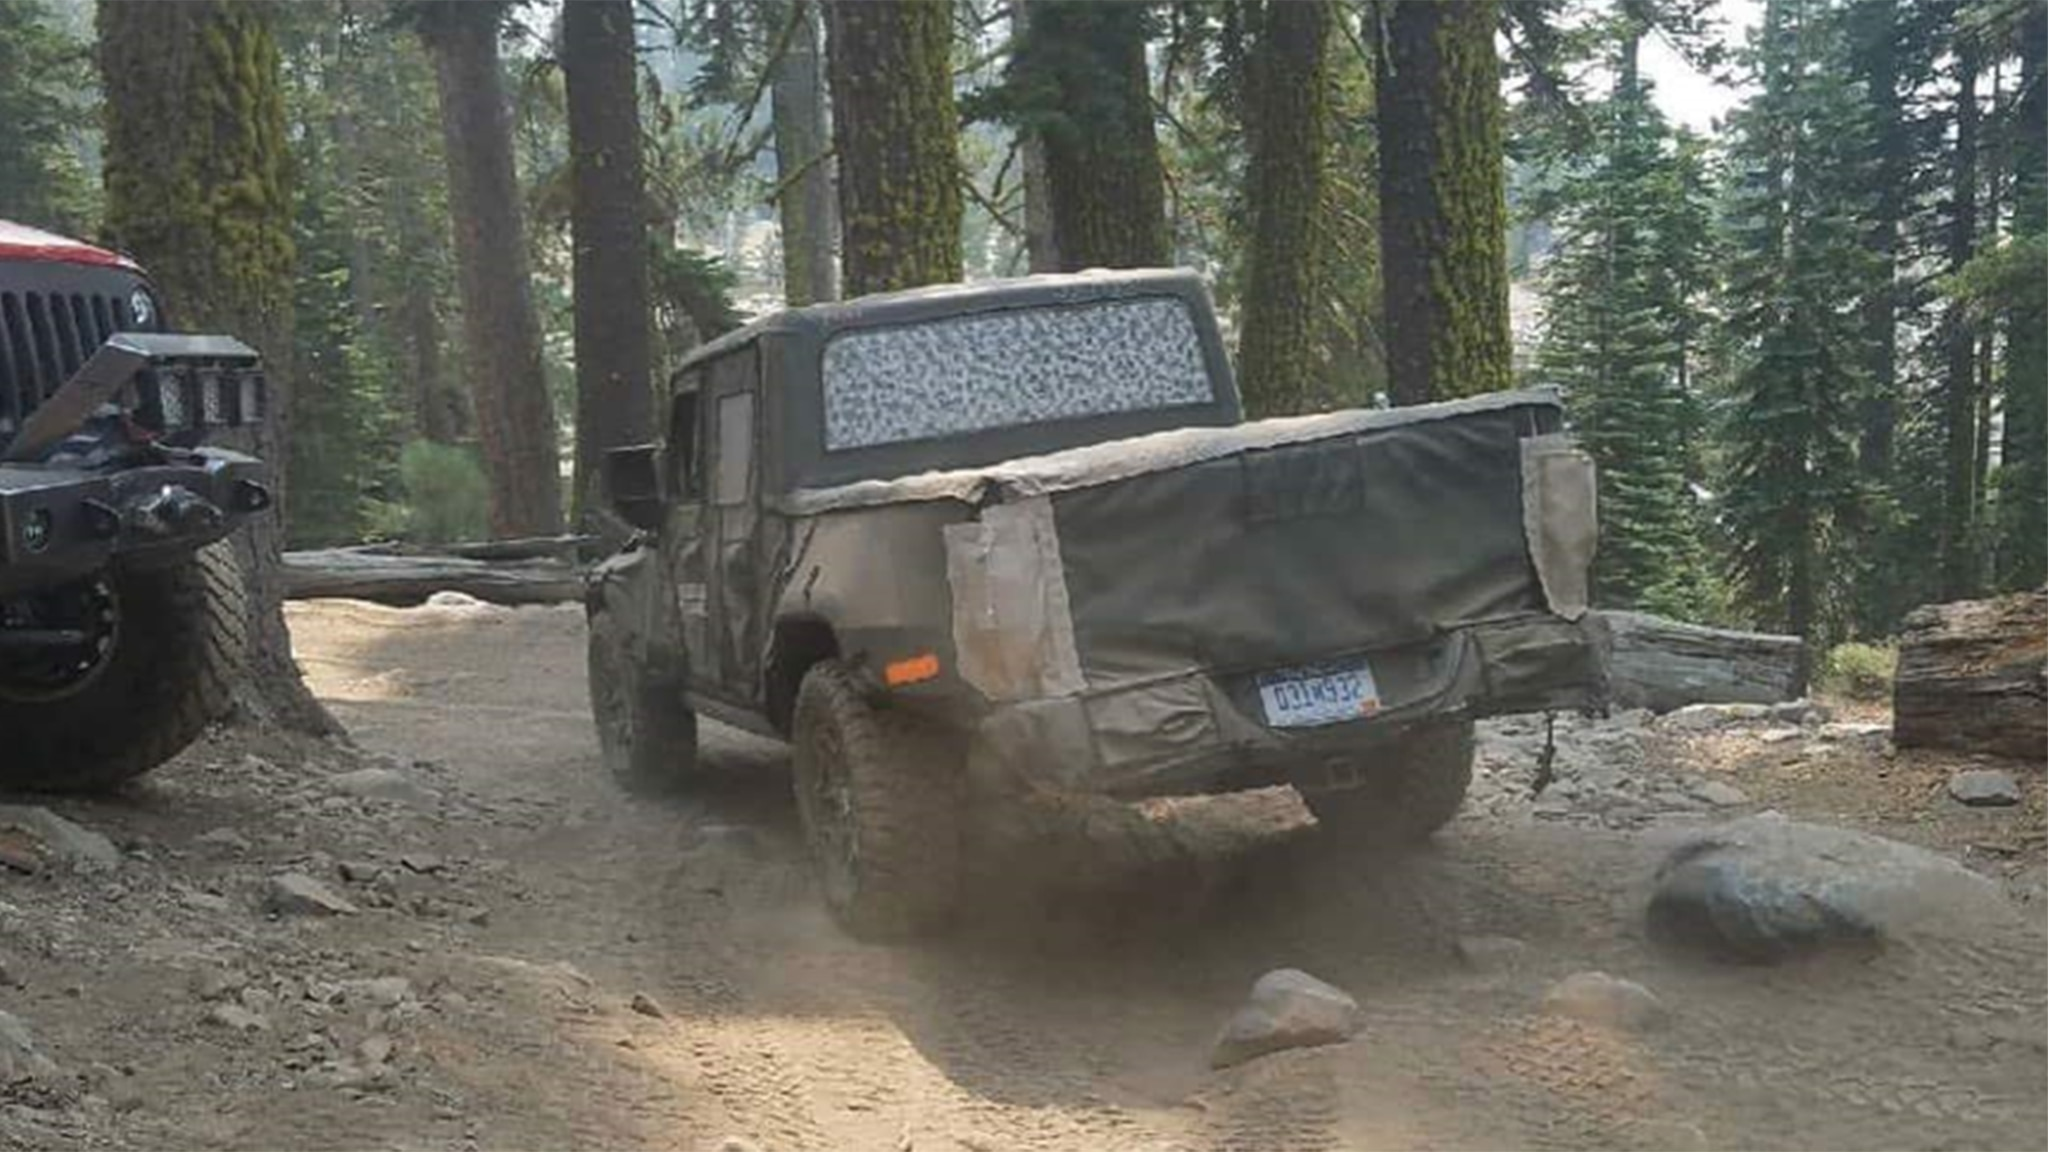 Jeep Wrangler Based Pickup Testing On Rubicon Trail